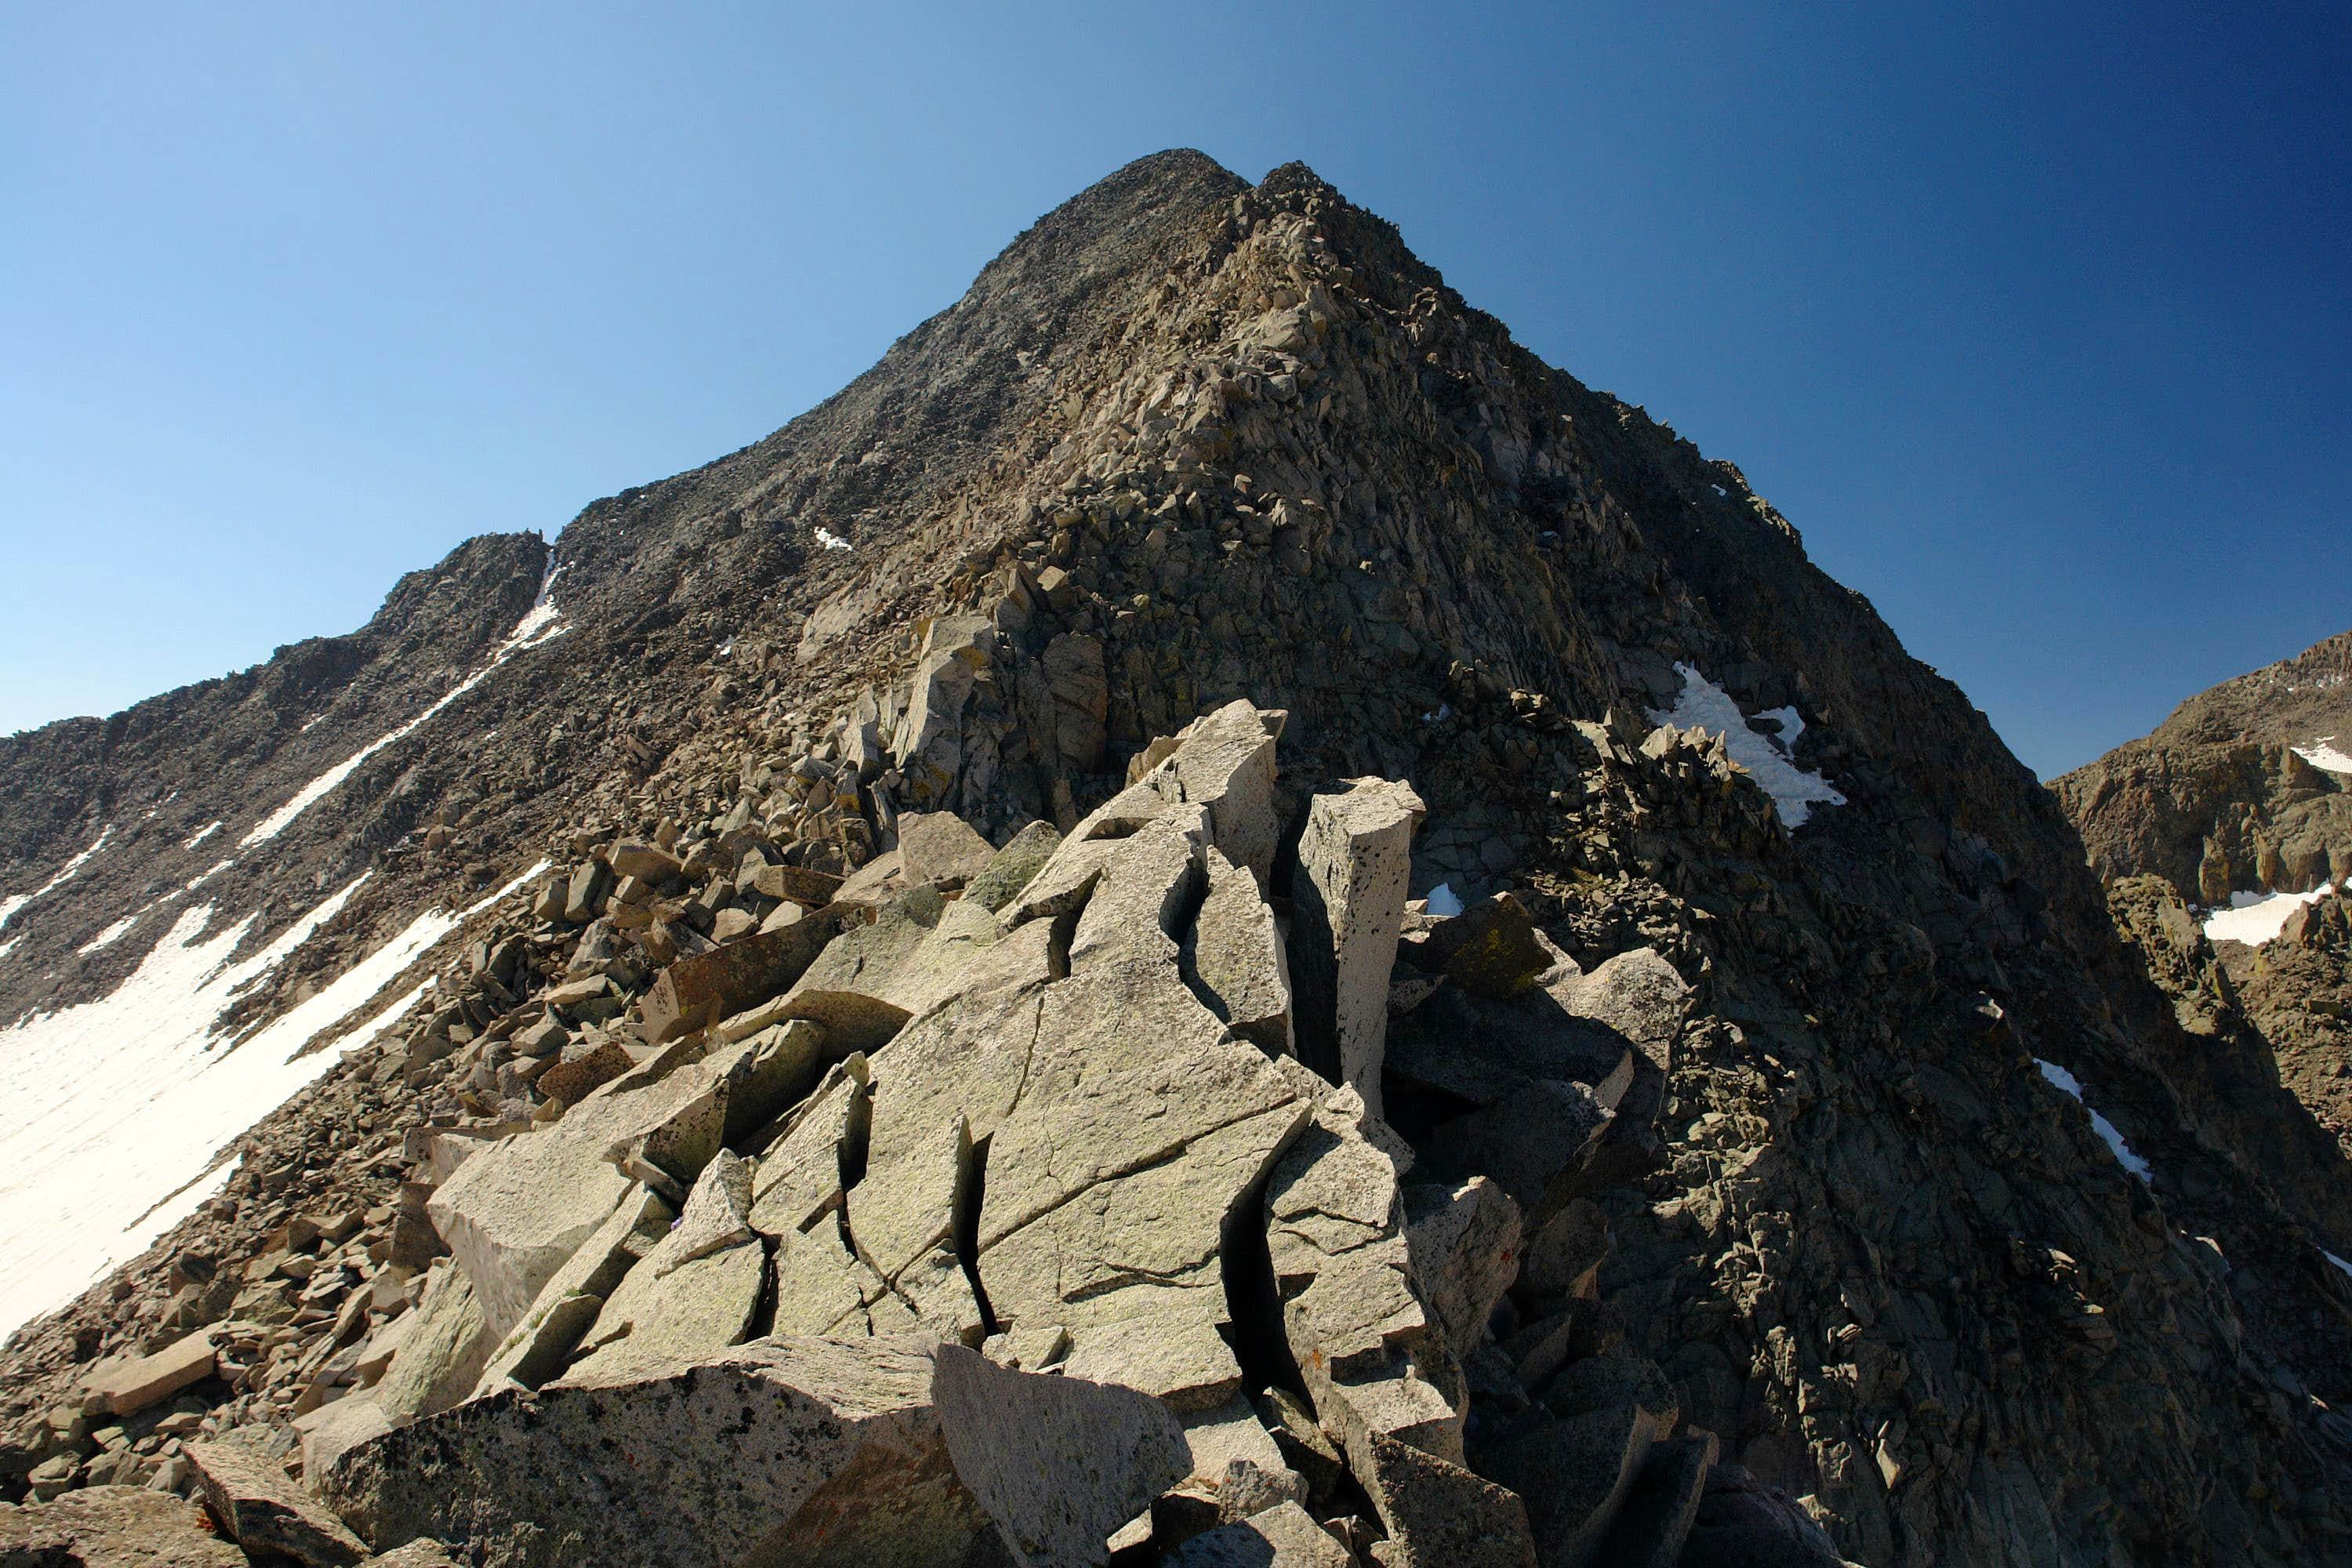 Gladstone Peak via North Ridge